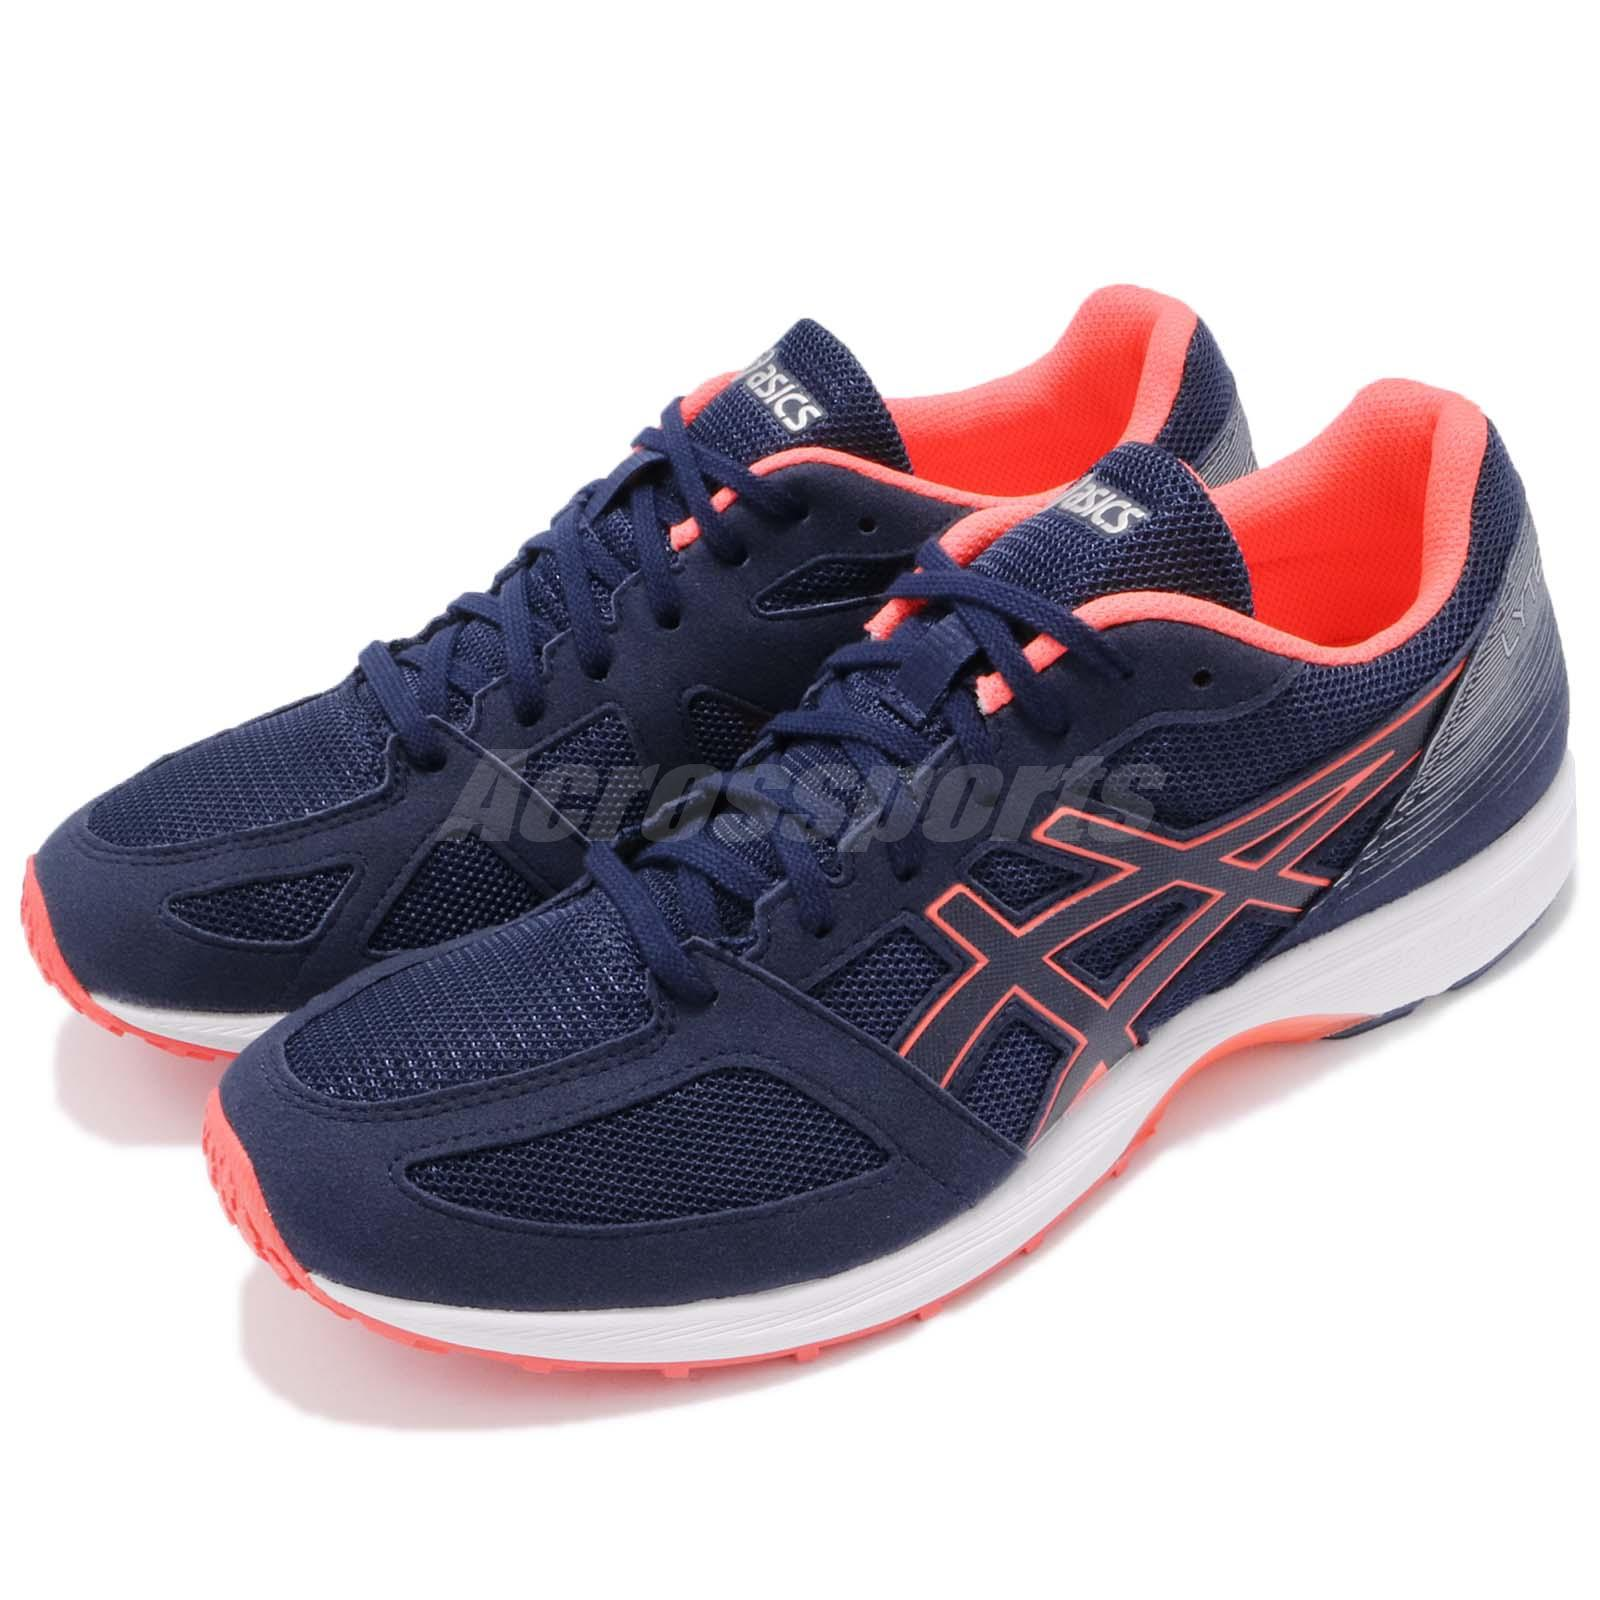 Asics Lyteracer TS Indigo Blue Orange Men Running Shoes Sneakers TJL436 4949